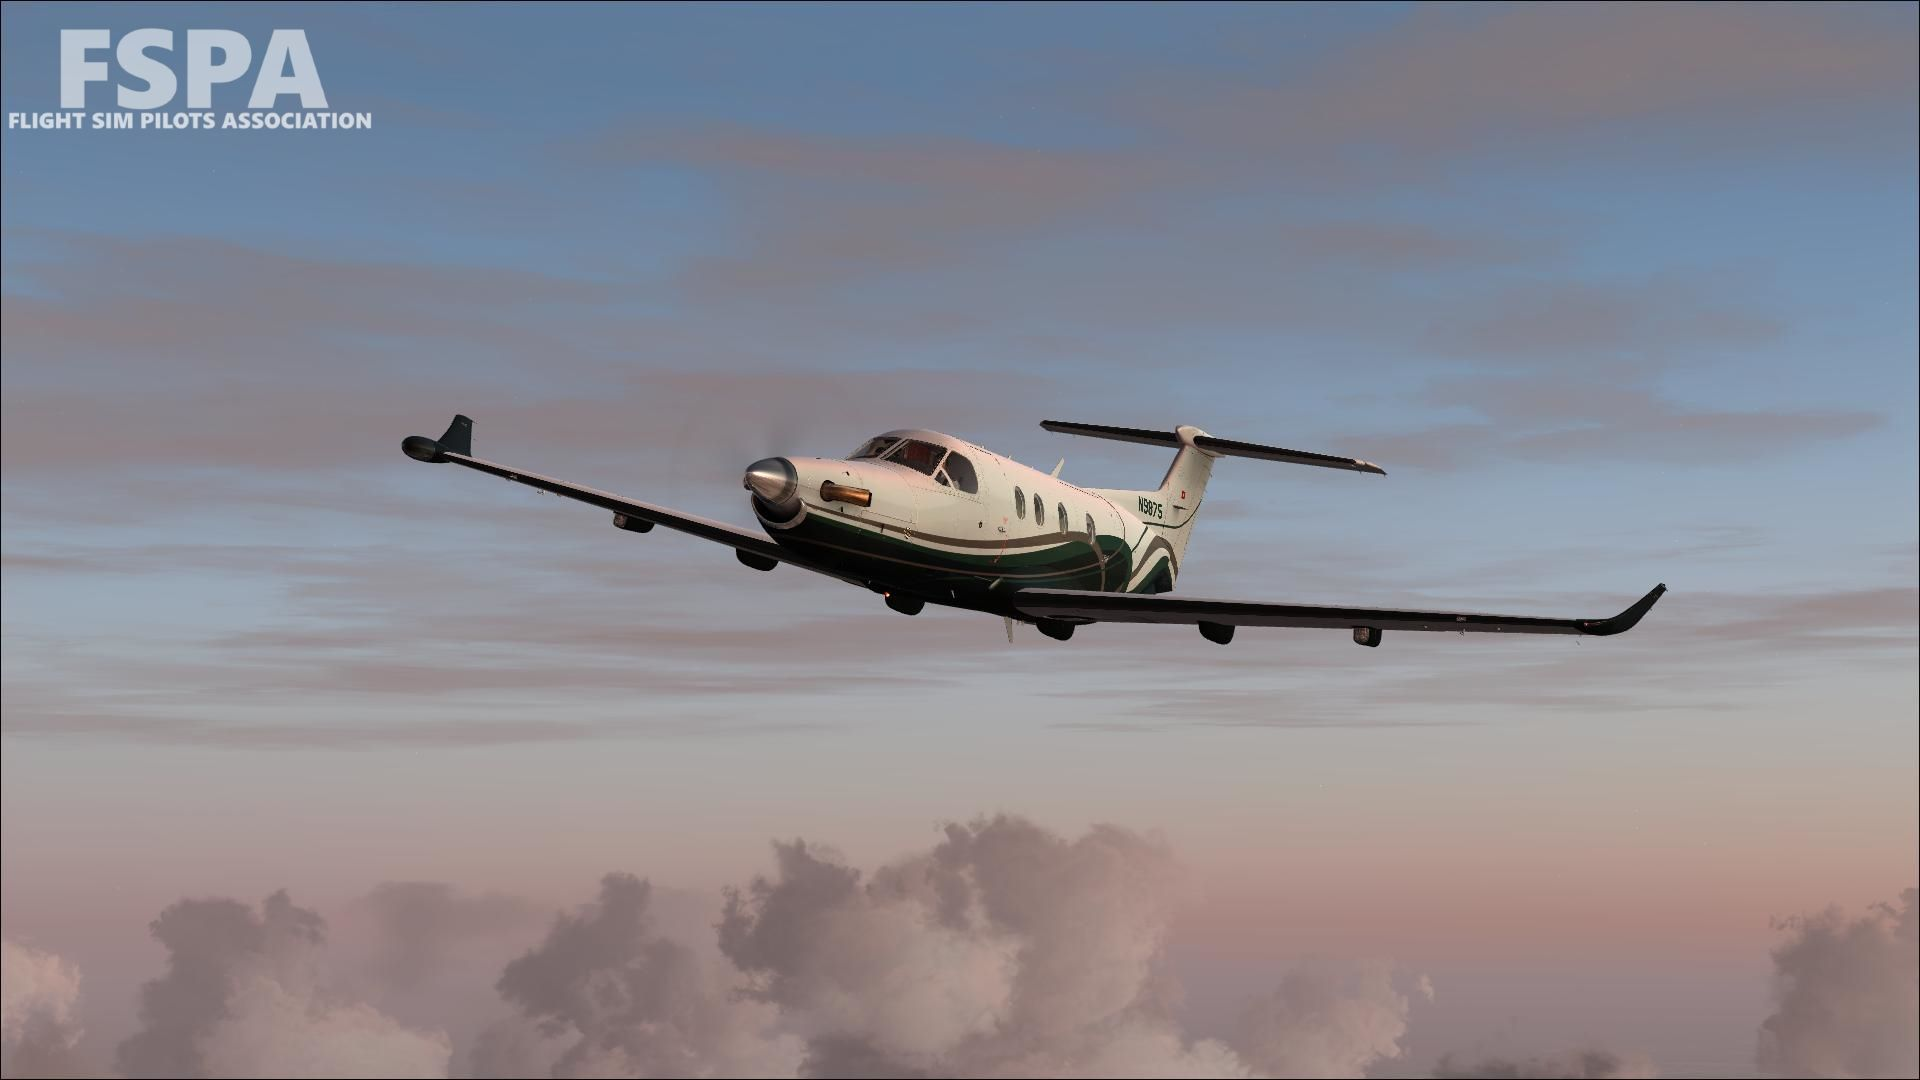 Pilatus PC-12 Wallpapers - Top Free Pilatus PC-12 Backgrounds